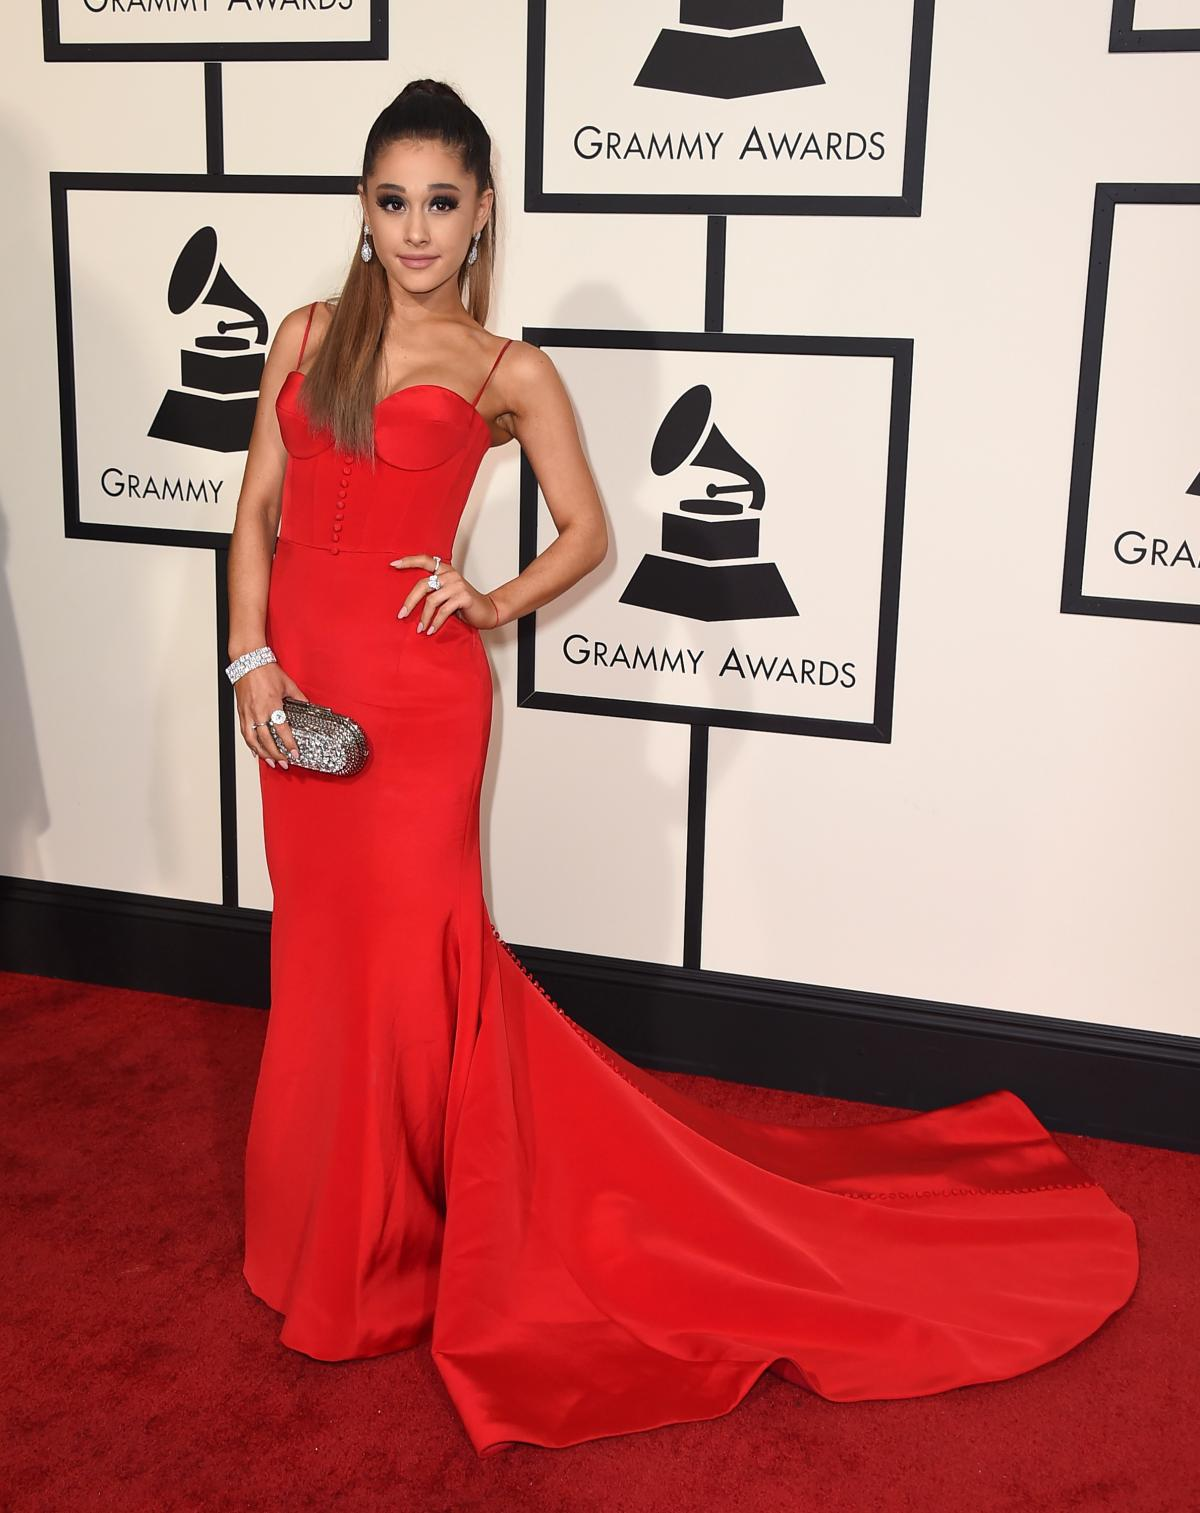 grammy awards 2016 my favorite top 15 red carpet dresses huffpost. Black Bedroom Furniture Sets. Home Design Ideas